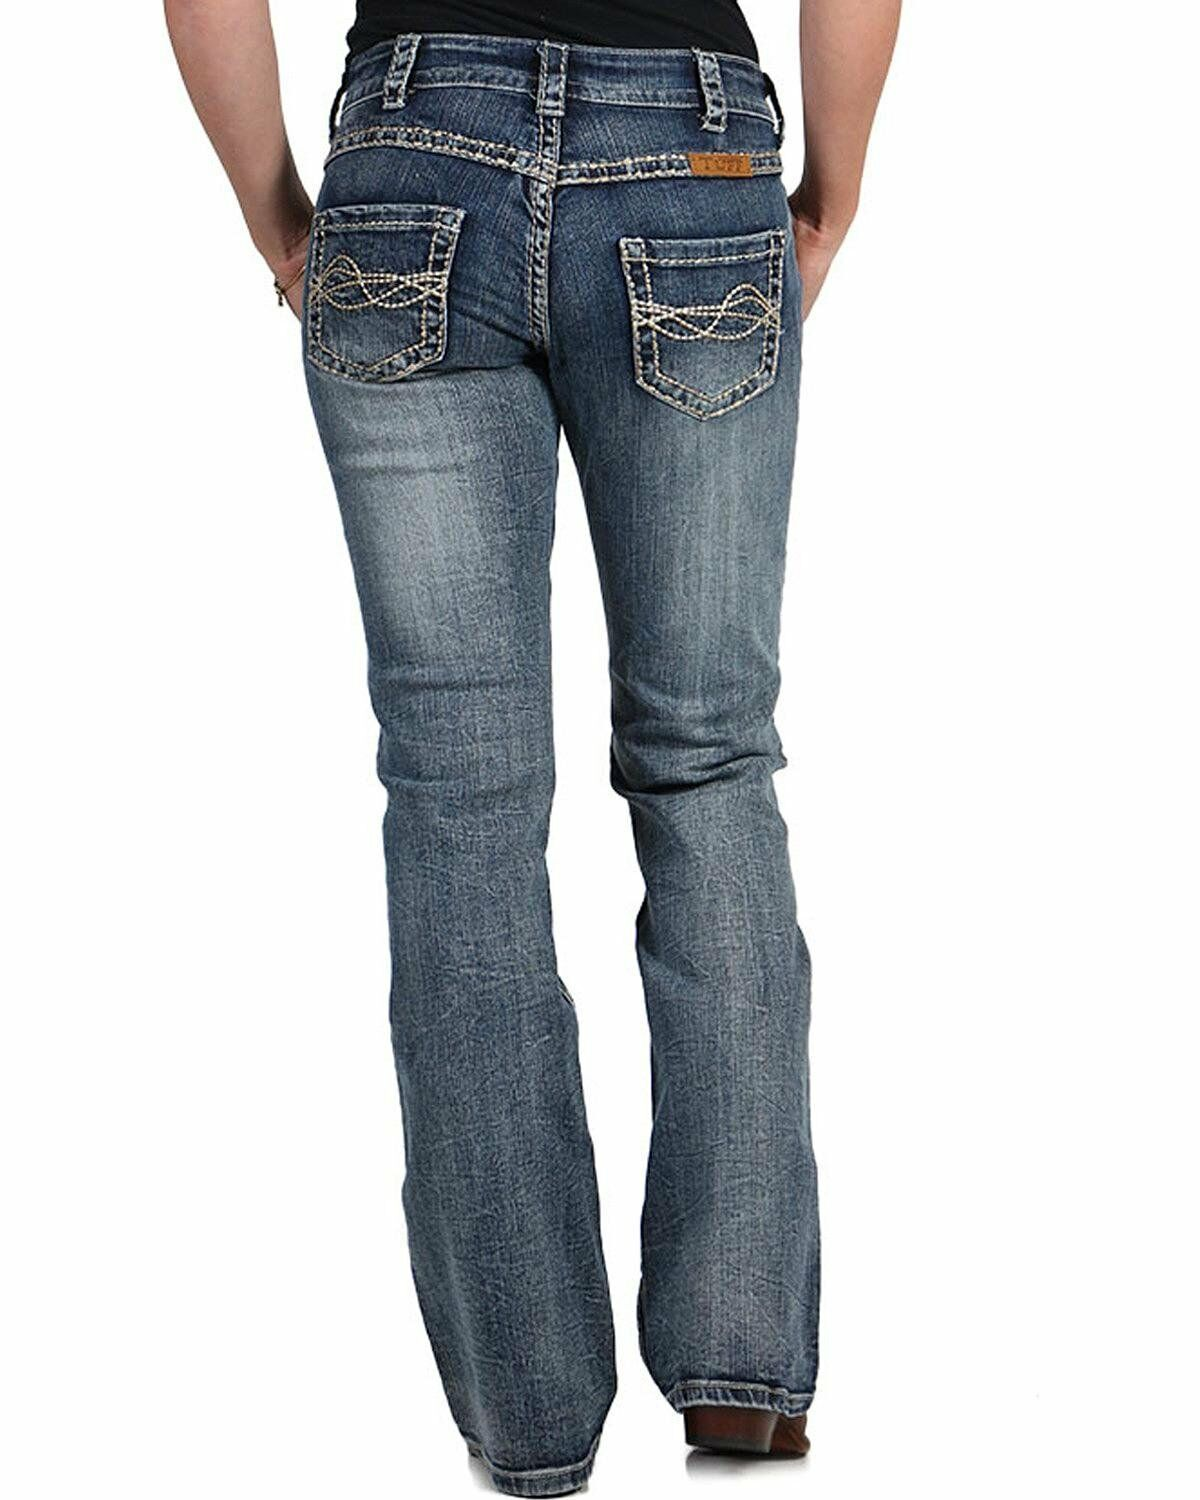 Cowgirl Tuff Women's Timeless Barbed Wire Jeans Boot Cut bluee 28W x 33L